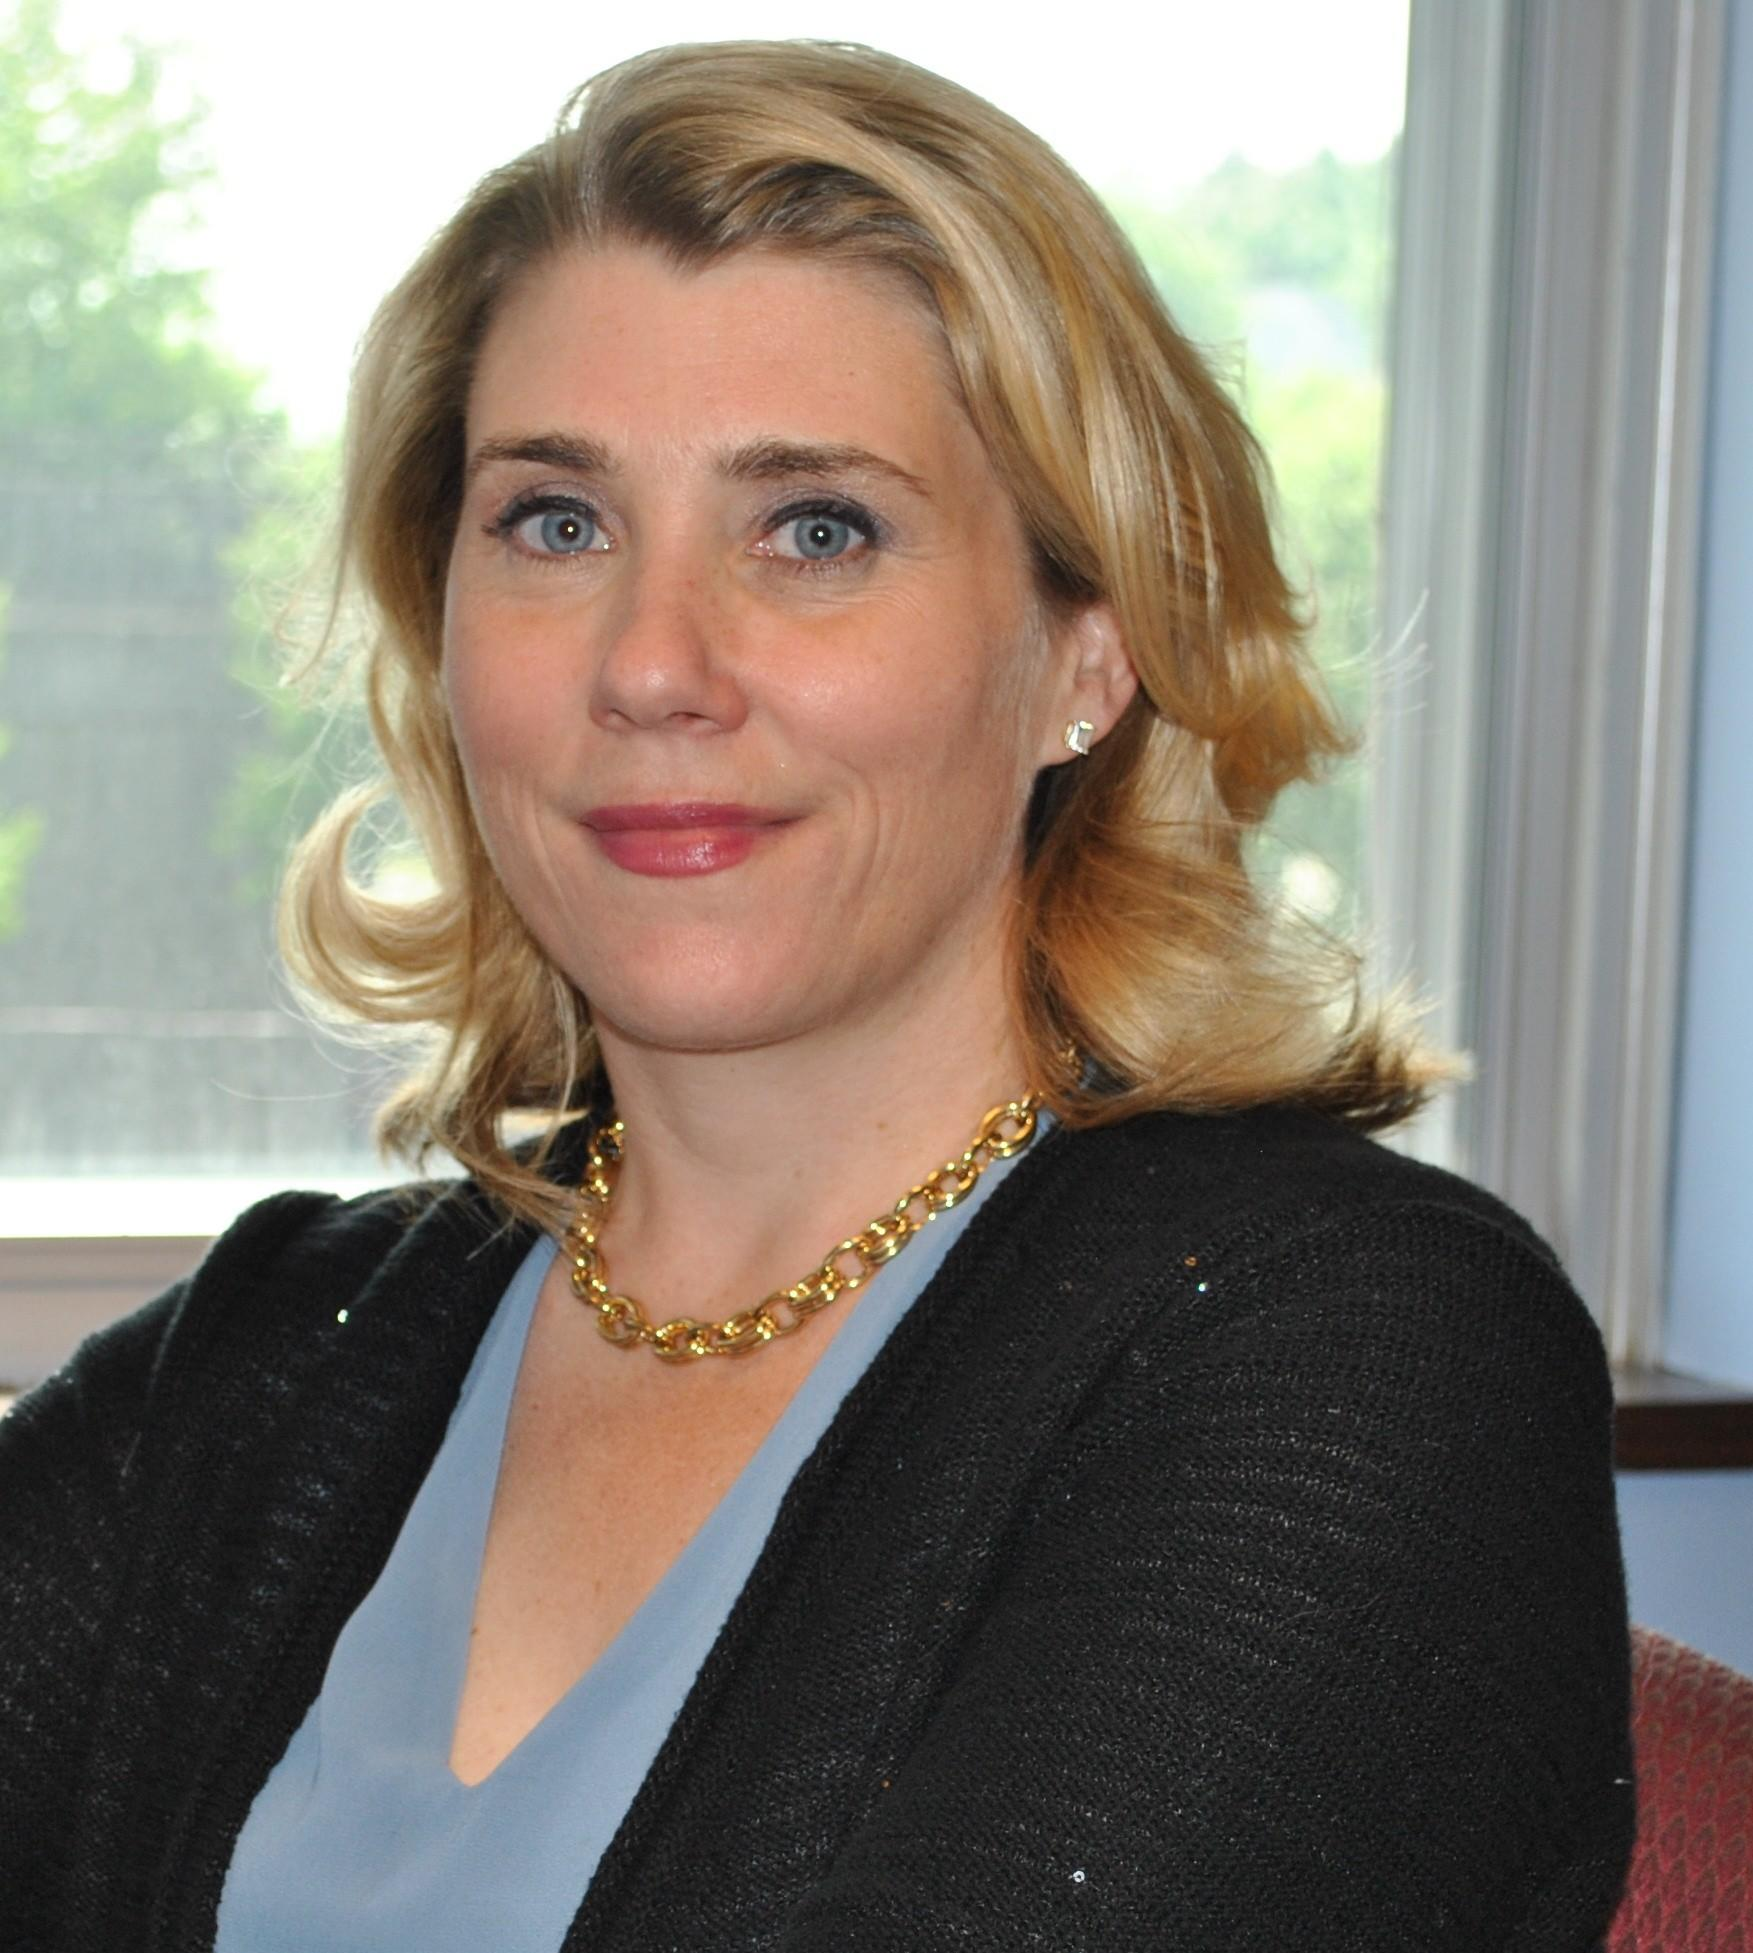 Katie Spizzirri of West Hartford is the new executive director of the Saint Mary's Hospital Foundation.